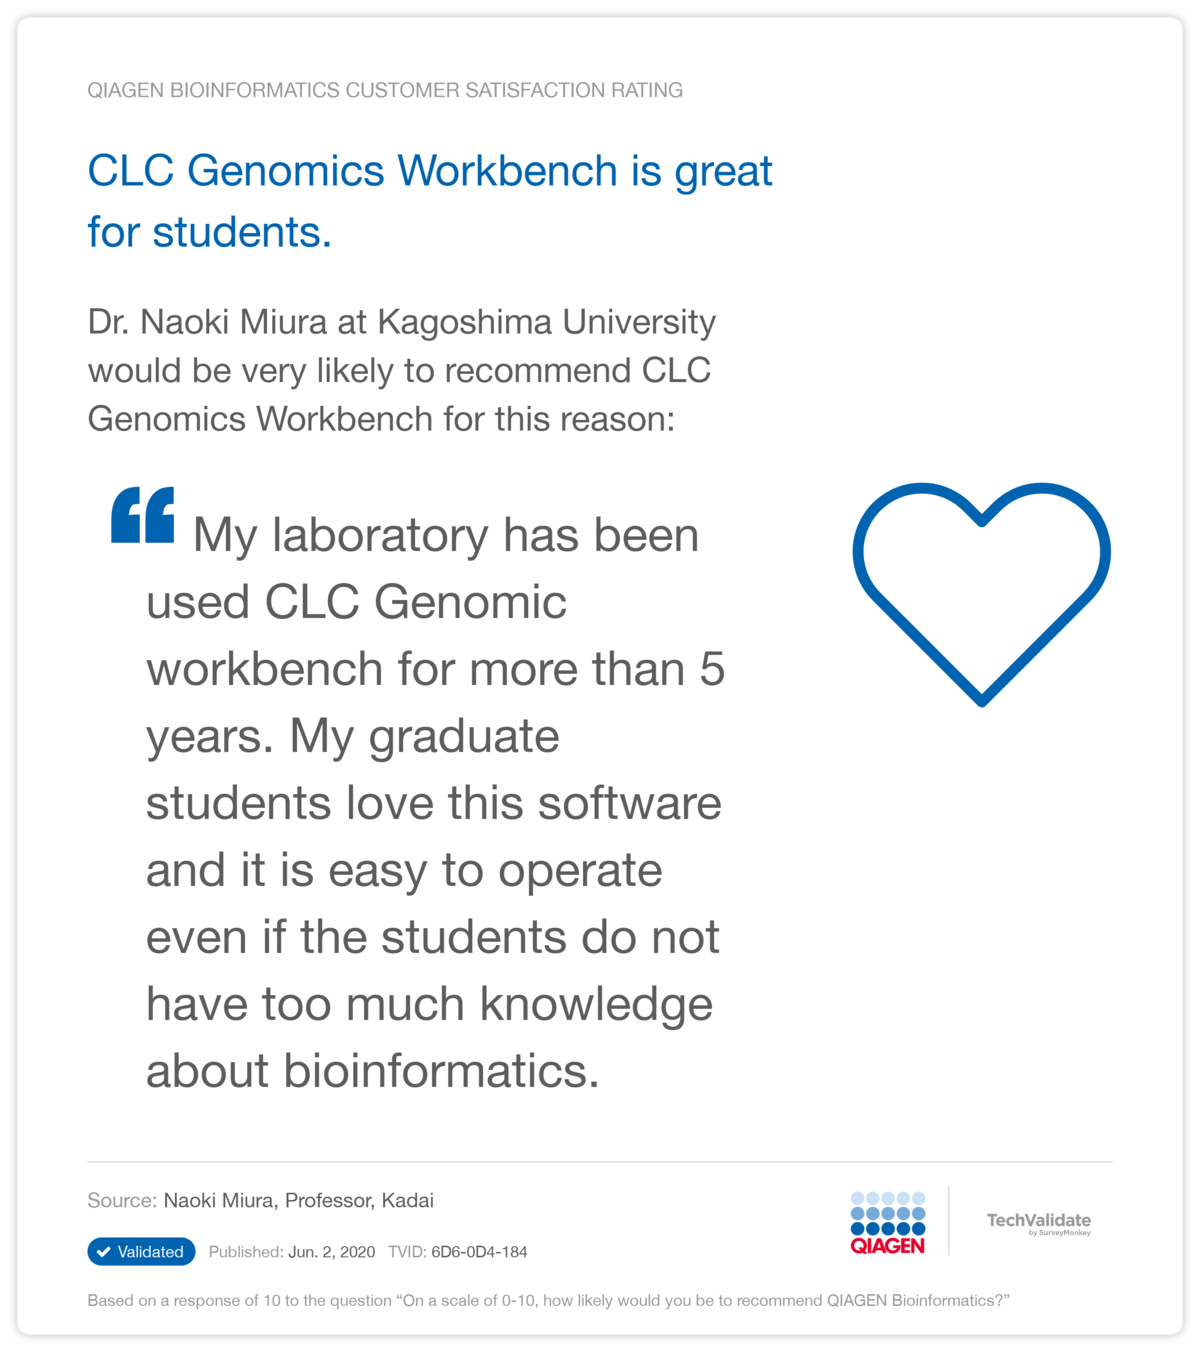 CLC Genomics Workbench is great for students.